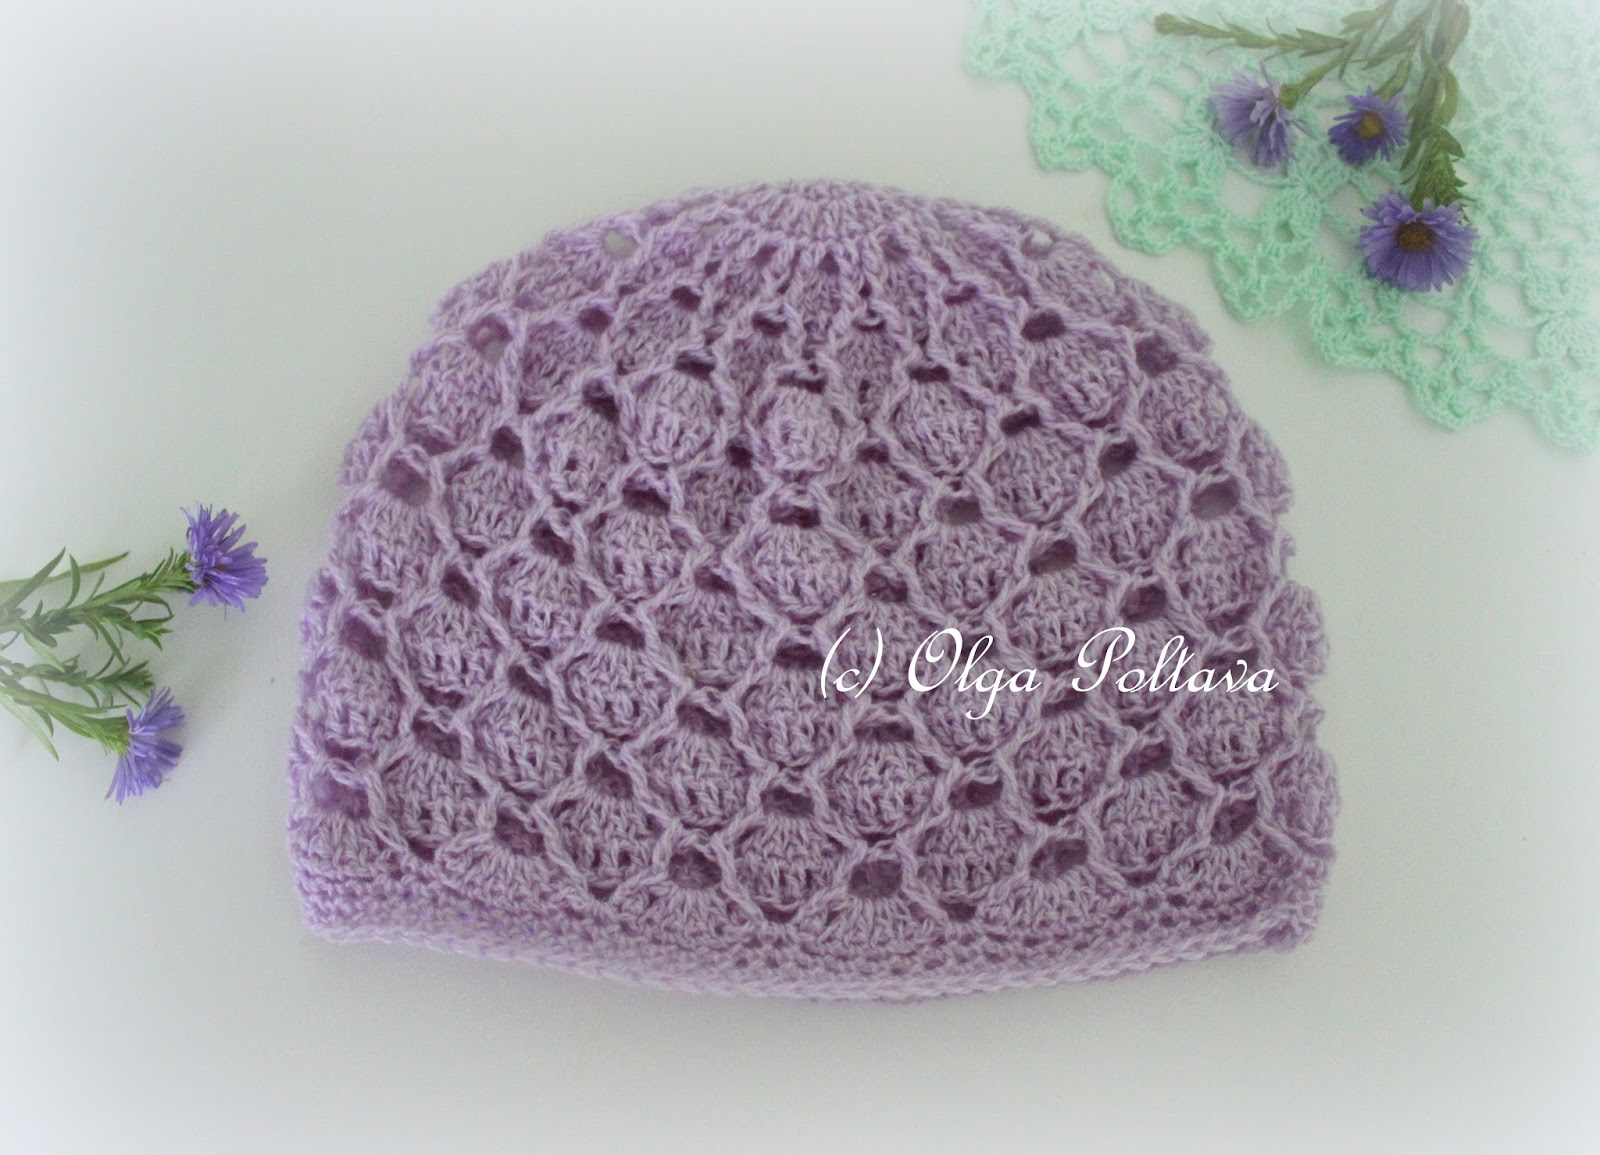 Crochet Baby Hat Pattern Instructions : Lacy Crochet: Delicate Lace Crochet Baby Hat, Free Pattern ...